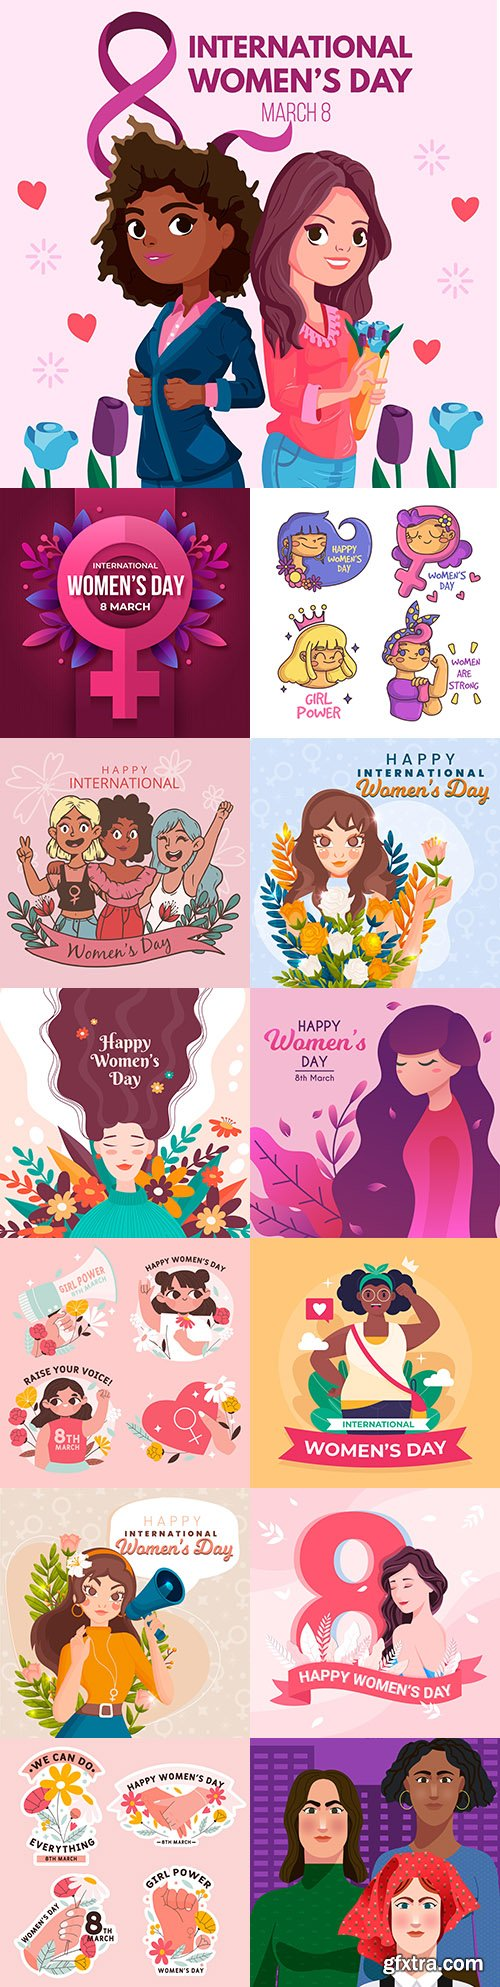 International Women's Day 8 March illustration with woman and flowers